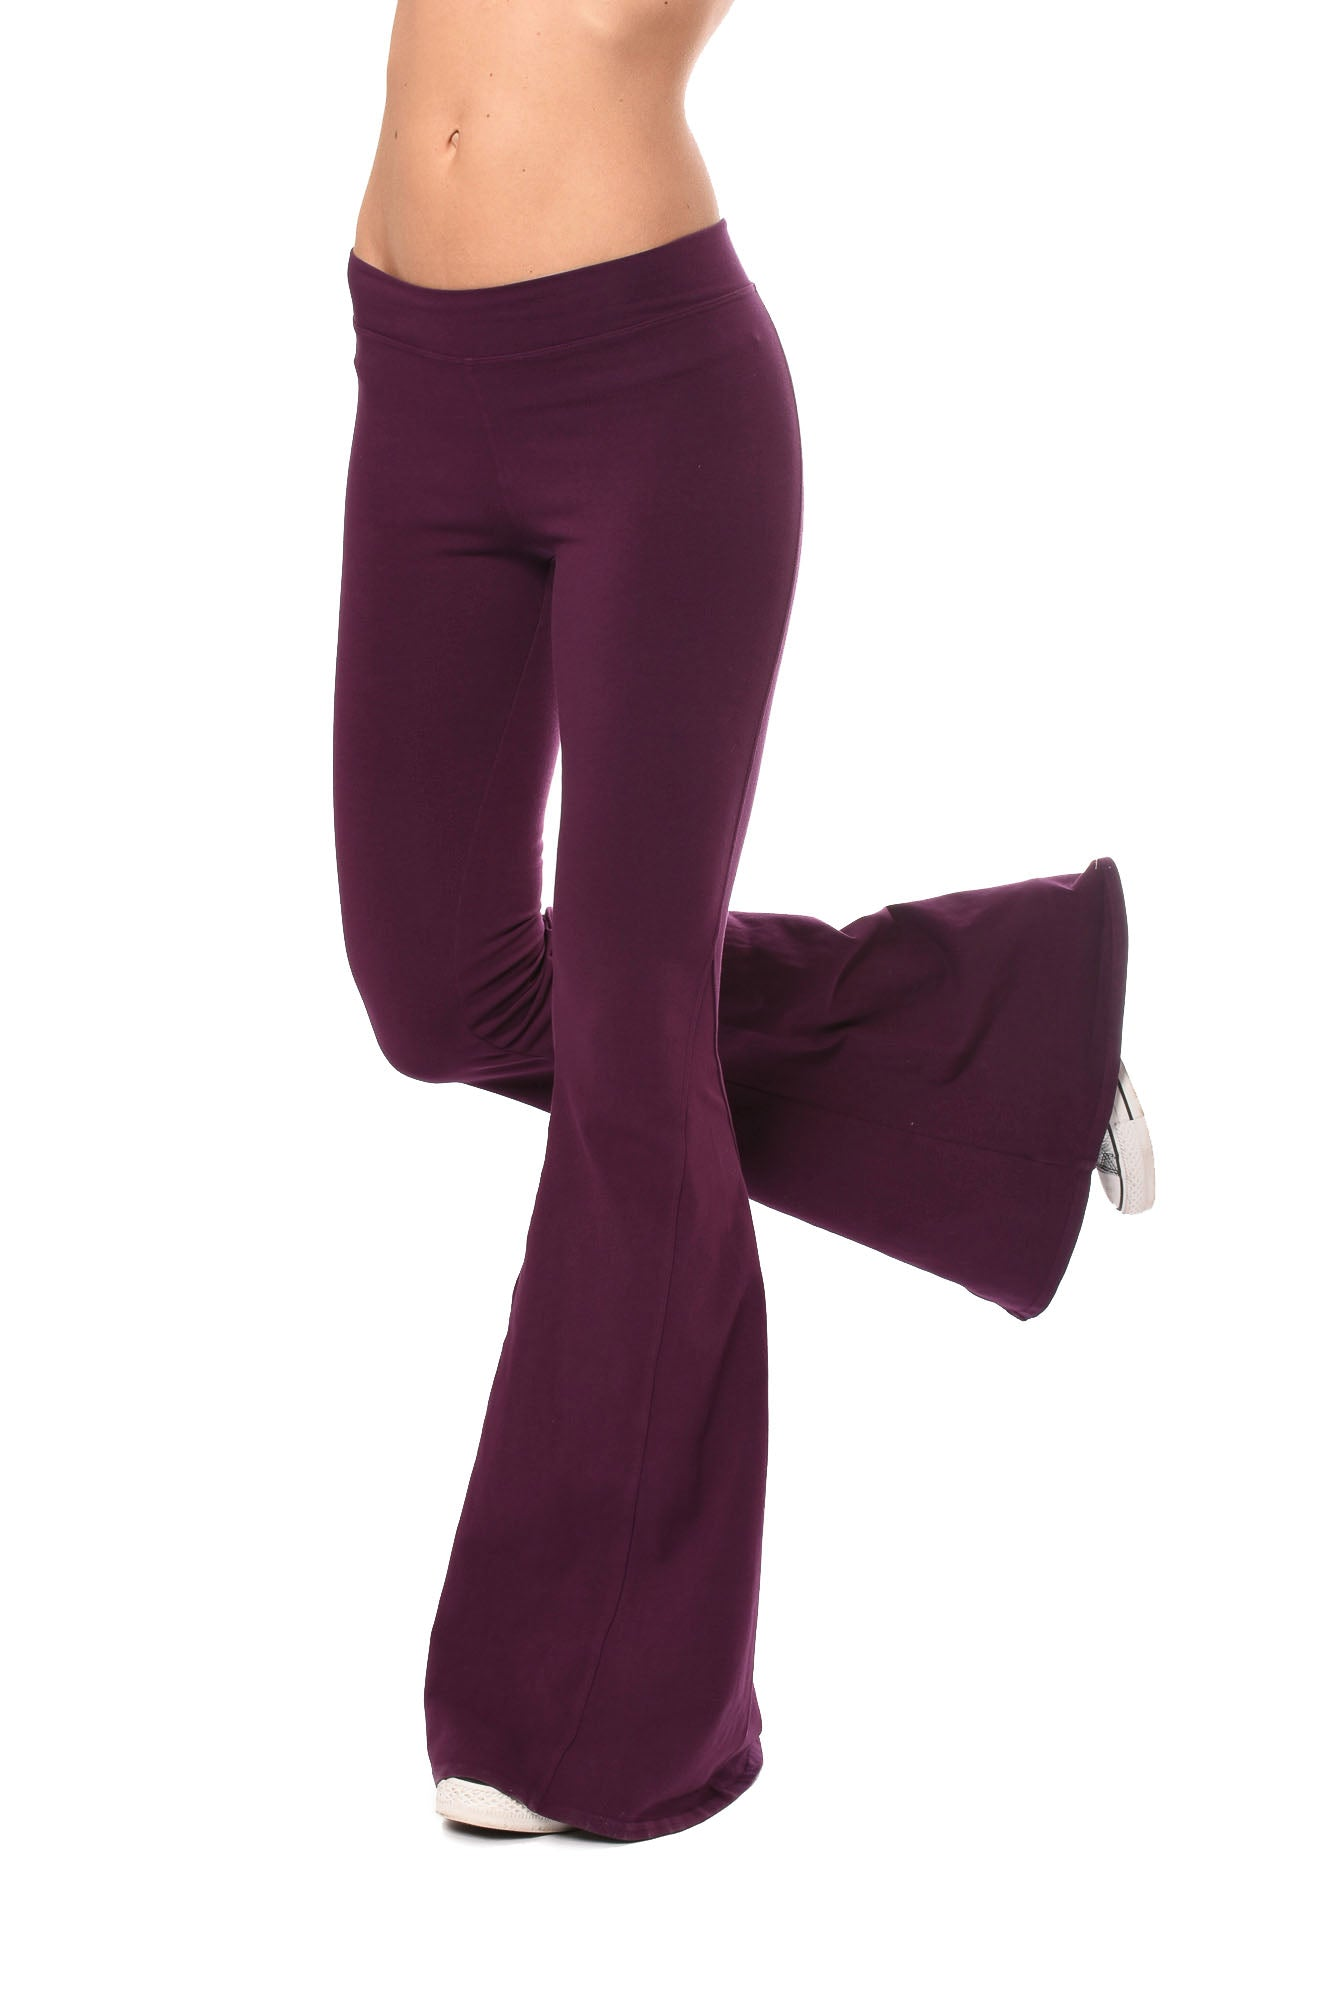 Hard Tail Forever - Hippie Chick Flare Pant (W-948, Jam)